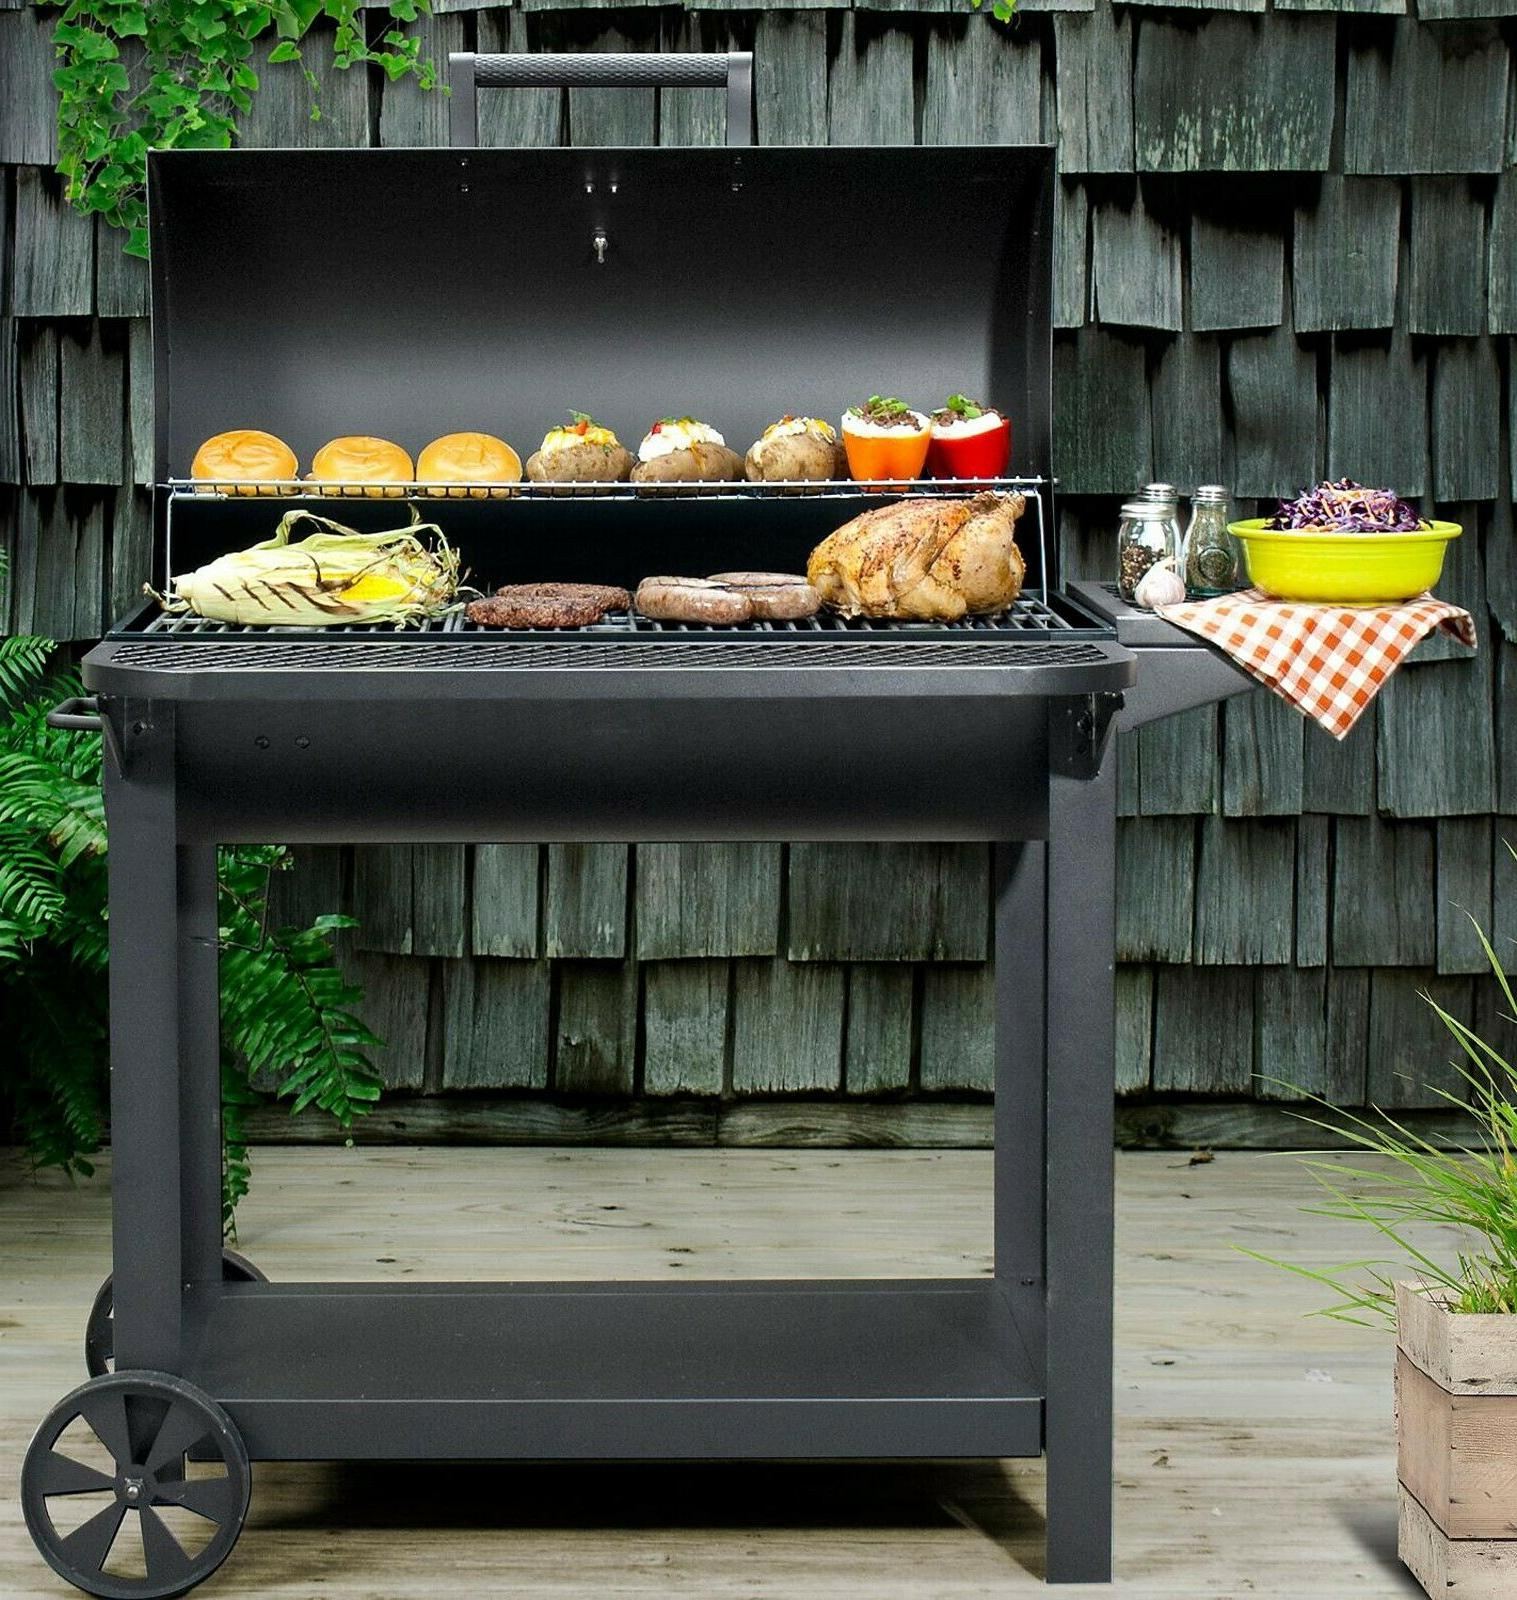 35 barrel charcoal grill outdoor bbq side